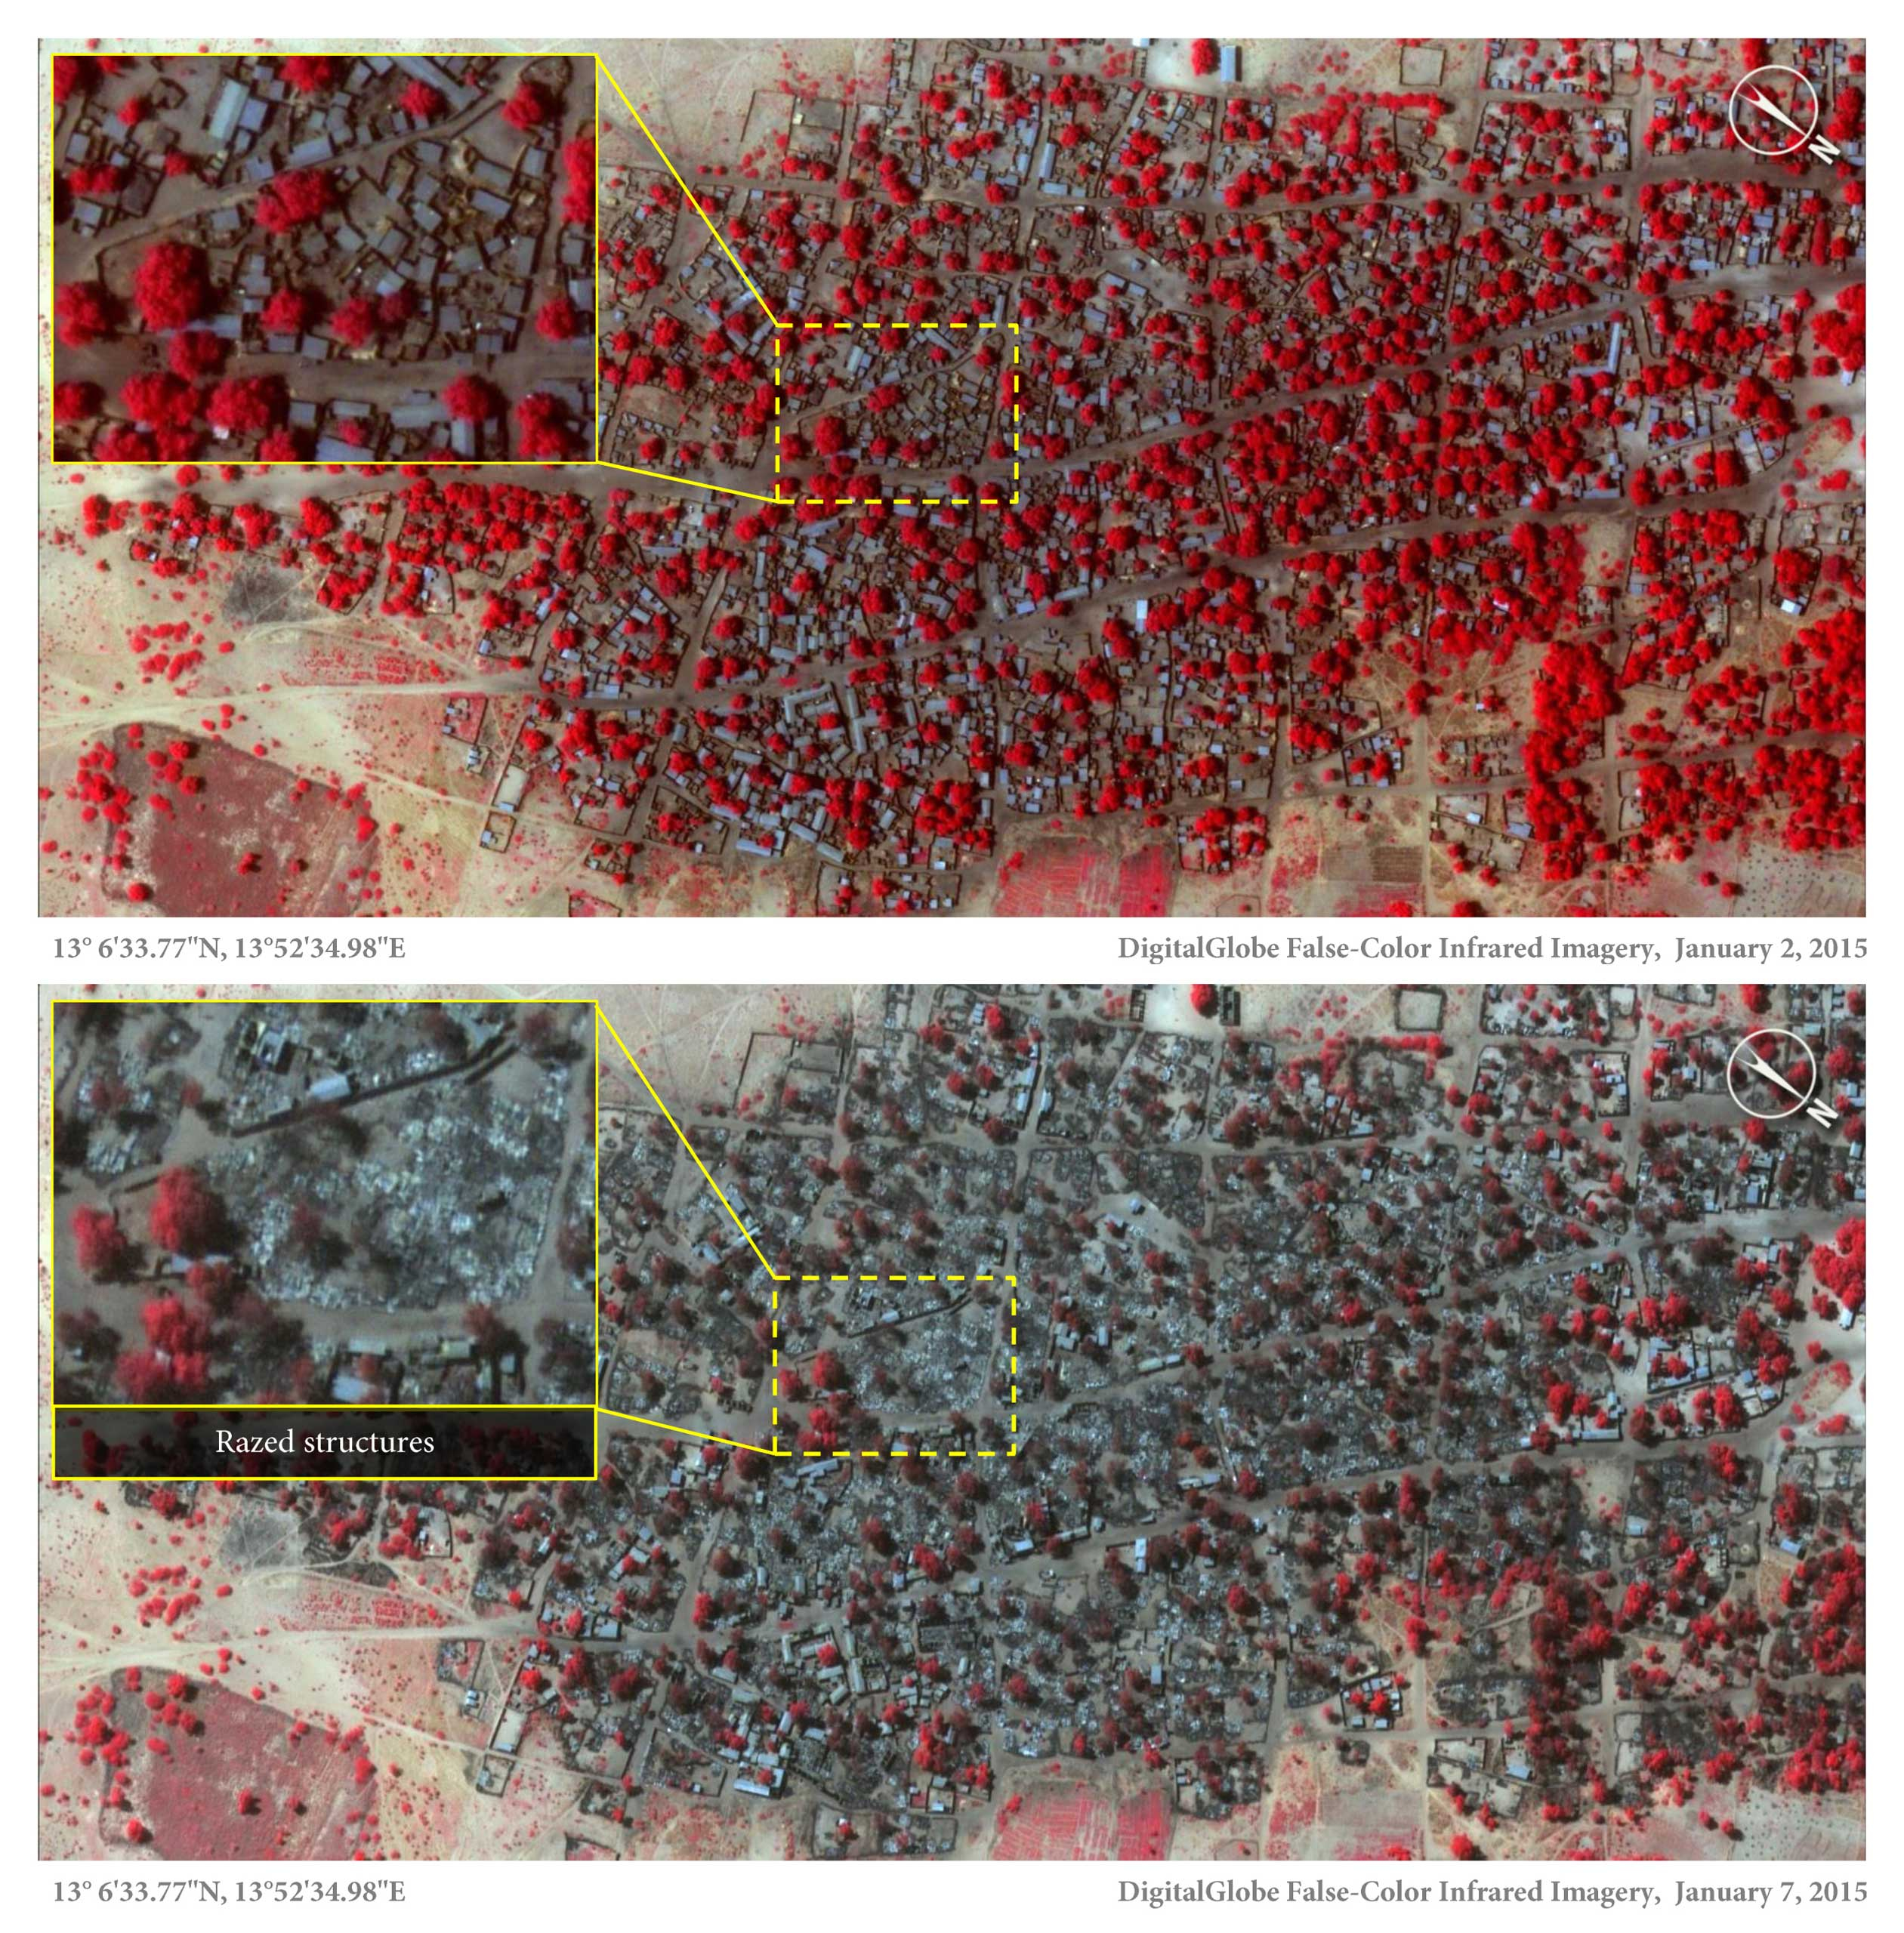 Above is a satellite image that shows densely packed structures and tree cover in Doro Baga, northeastern Nigeria, on Jan. 2, 2015. Below, in an image on Jan. 7, shows almost all of the structures razed. (Red areas indicate healthy vegetation.)